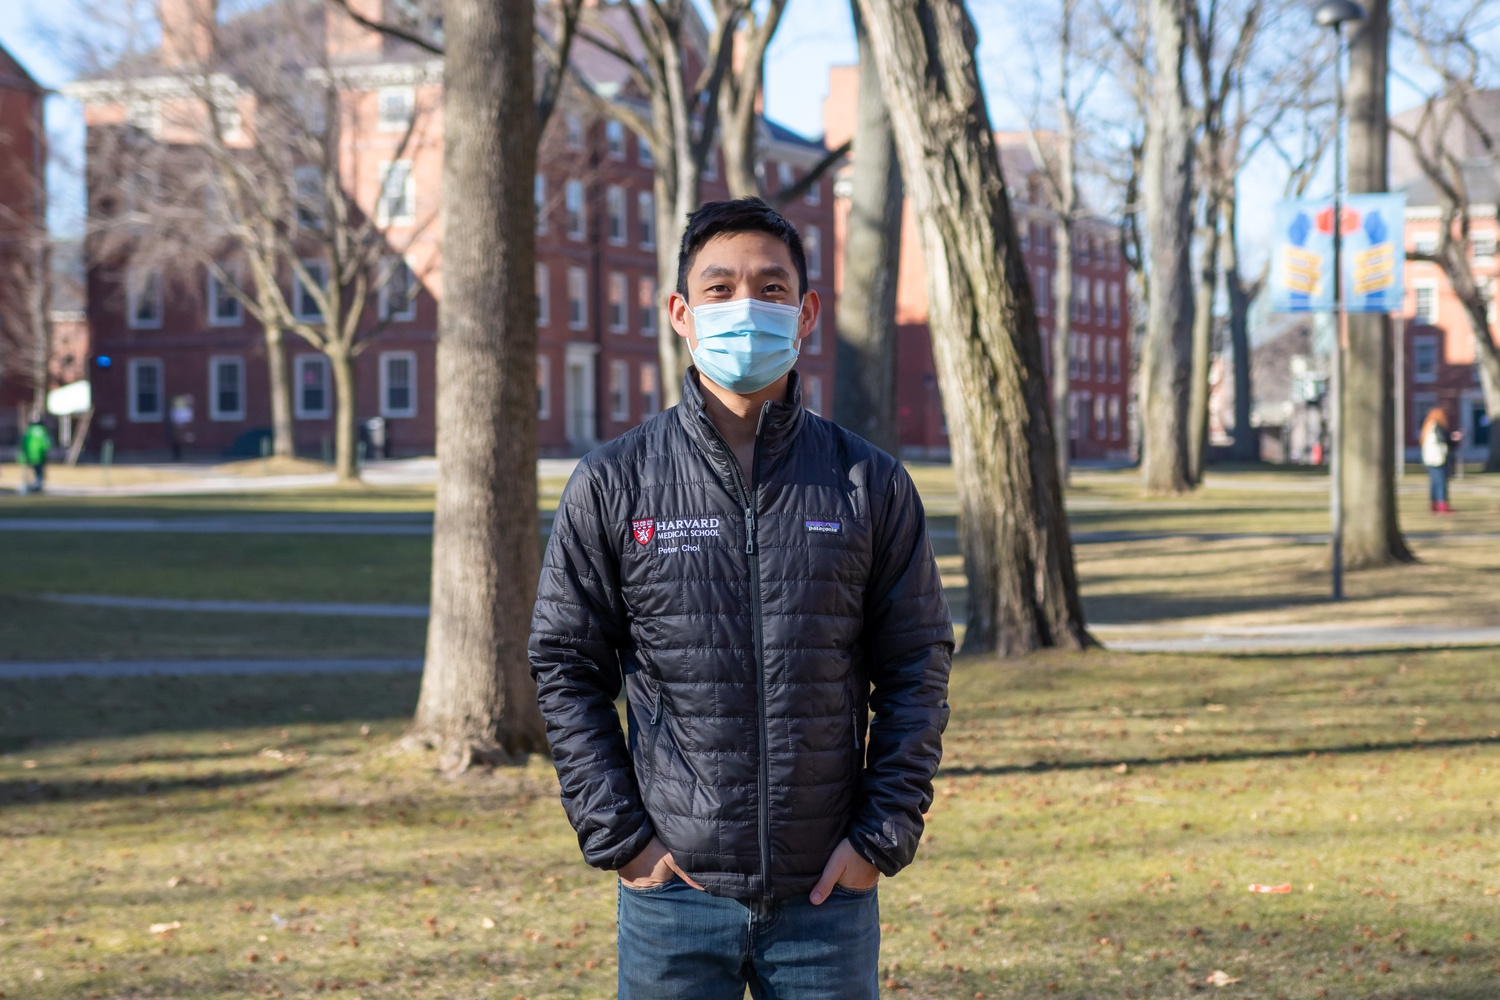 Peter M. Choi is a first-year student in the Masters of Bioethics program at Harvard Medical School and a volunteer at Brigham.